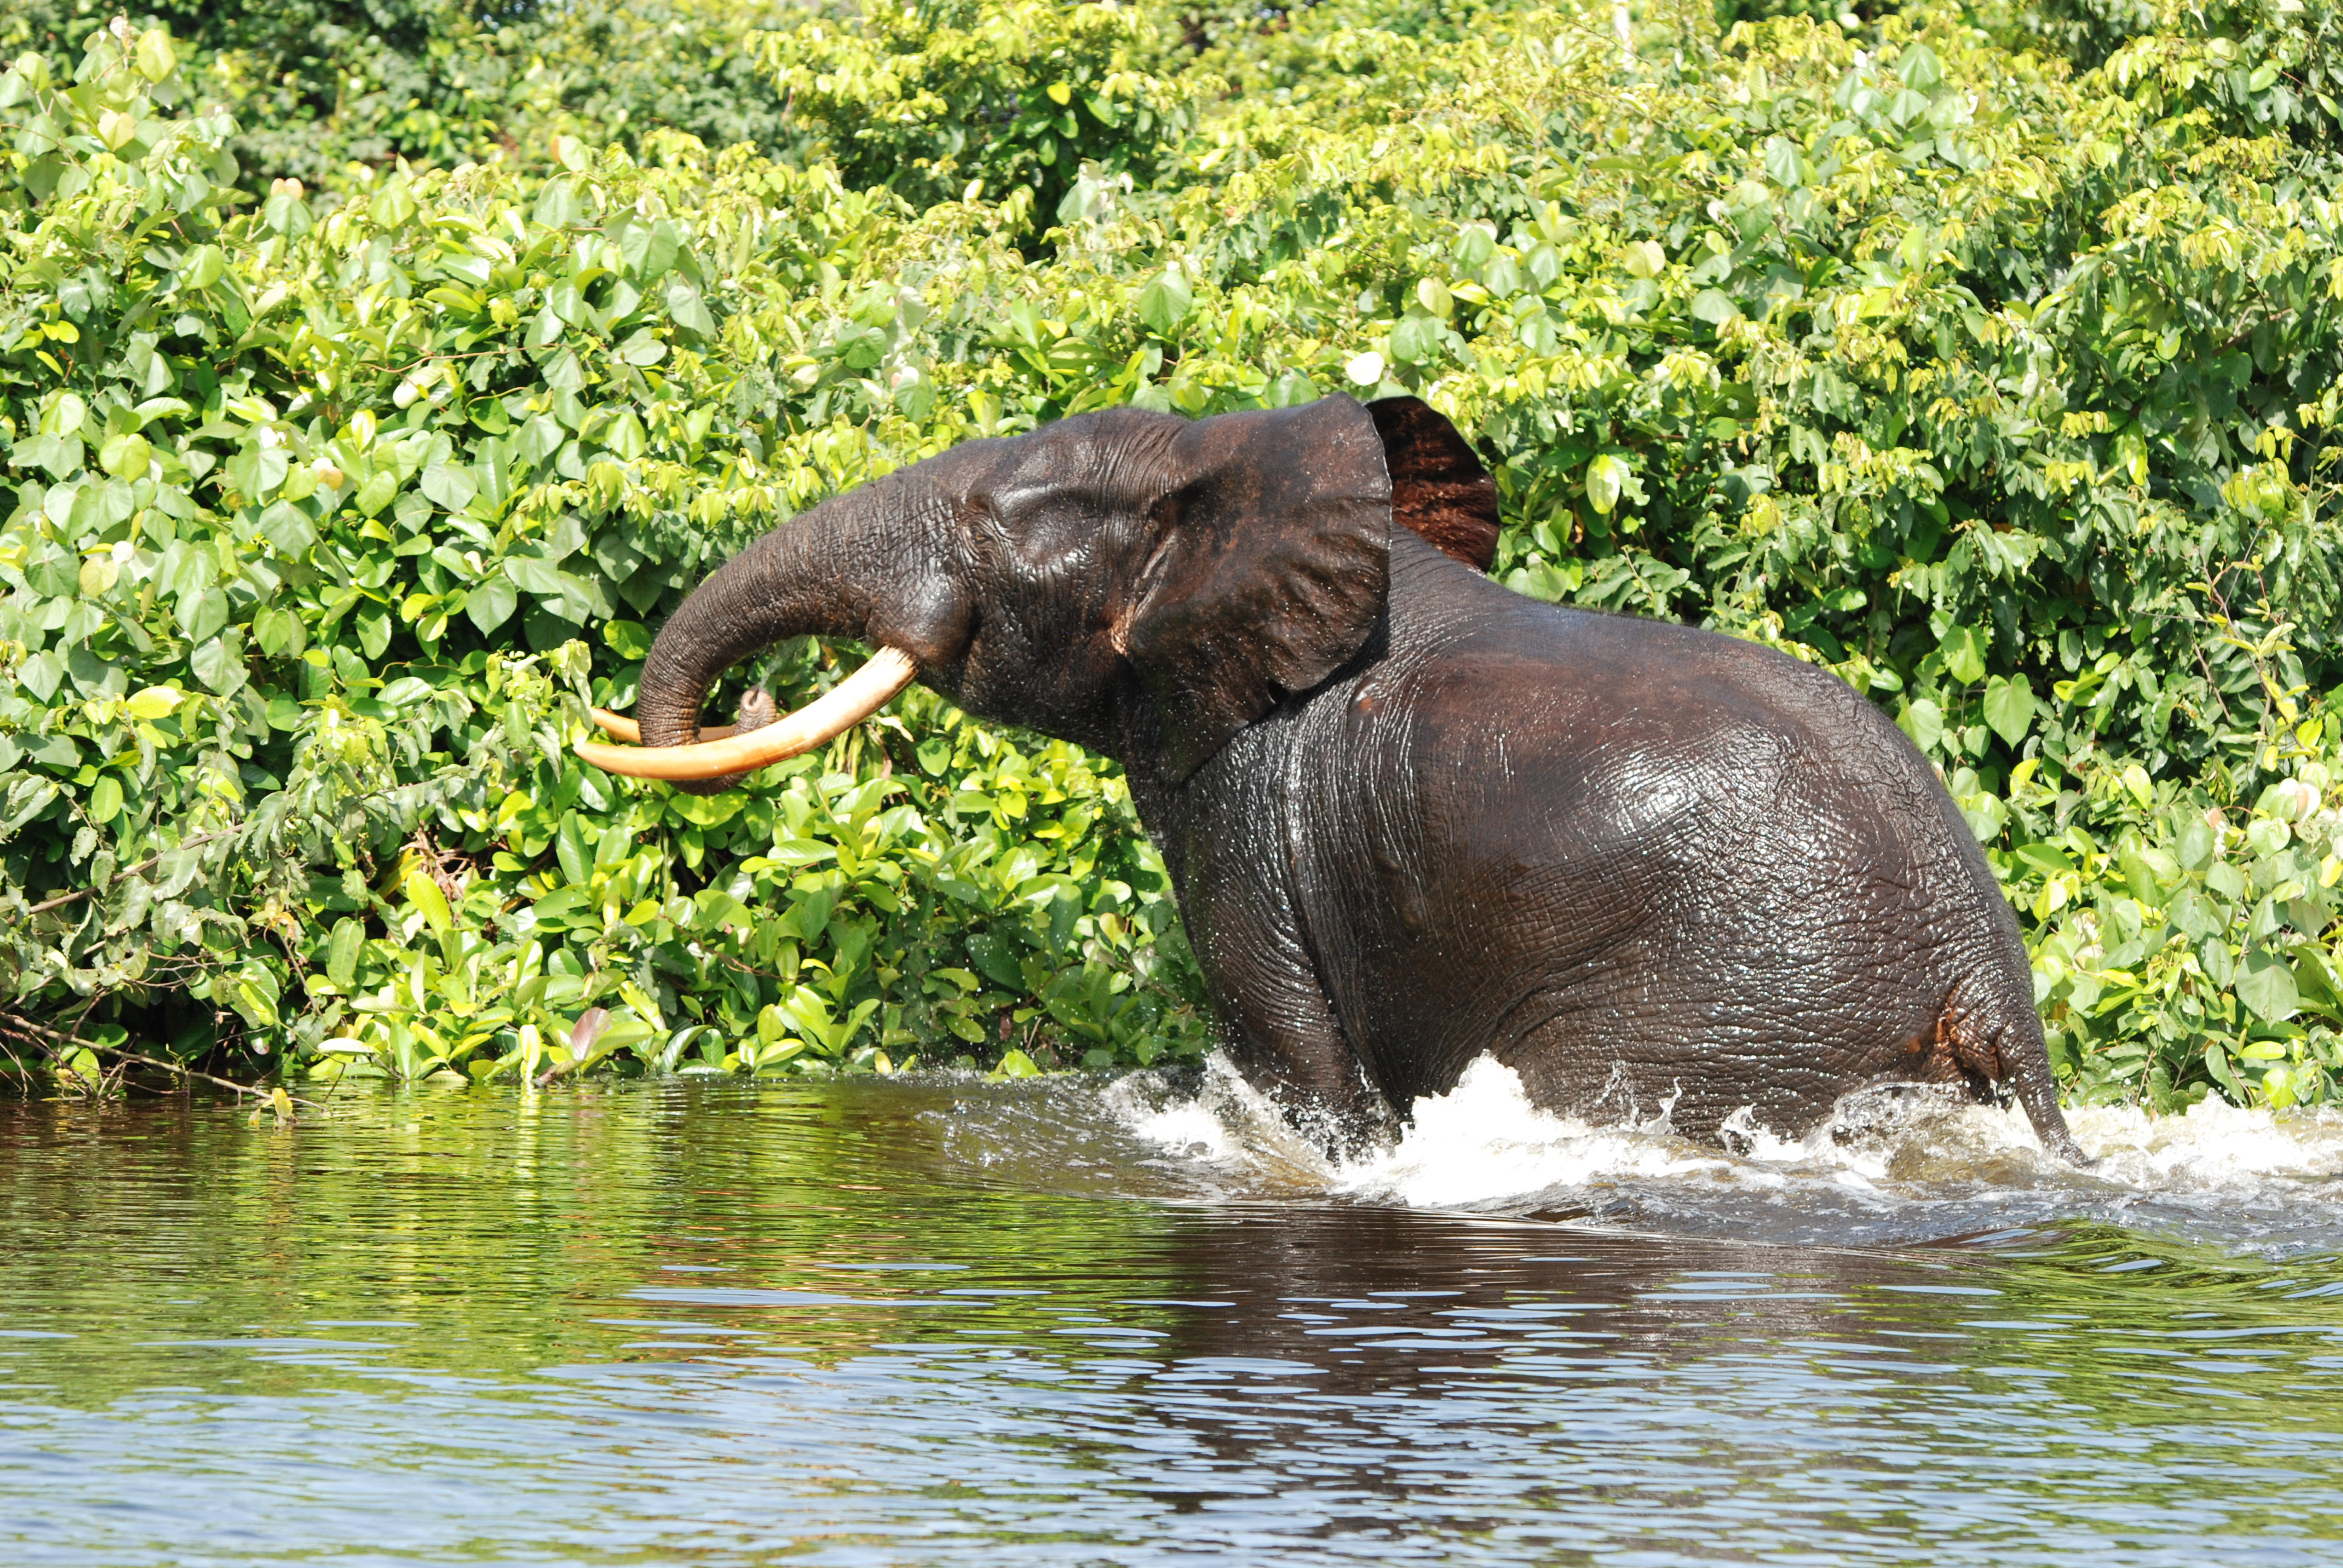 Central Africa biomonitoring report: Several forest elephant